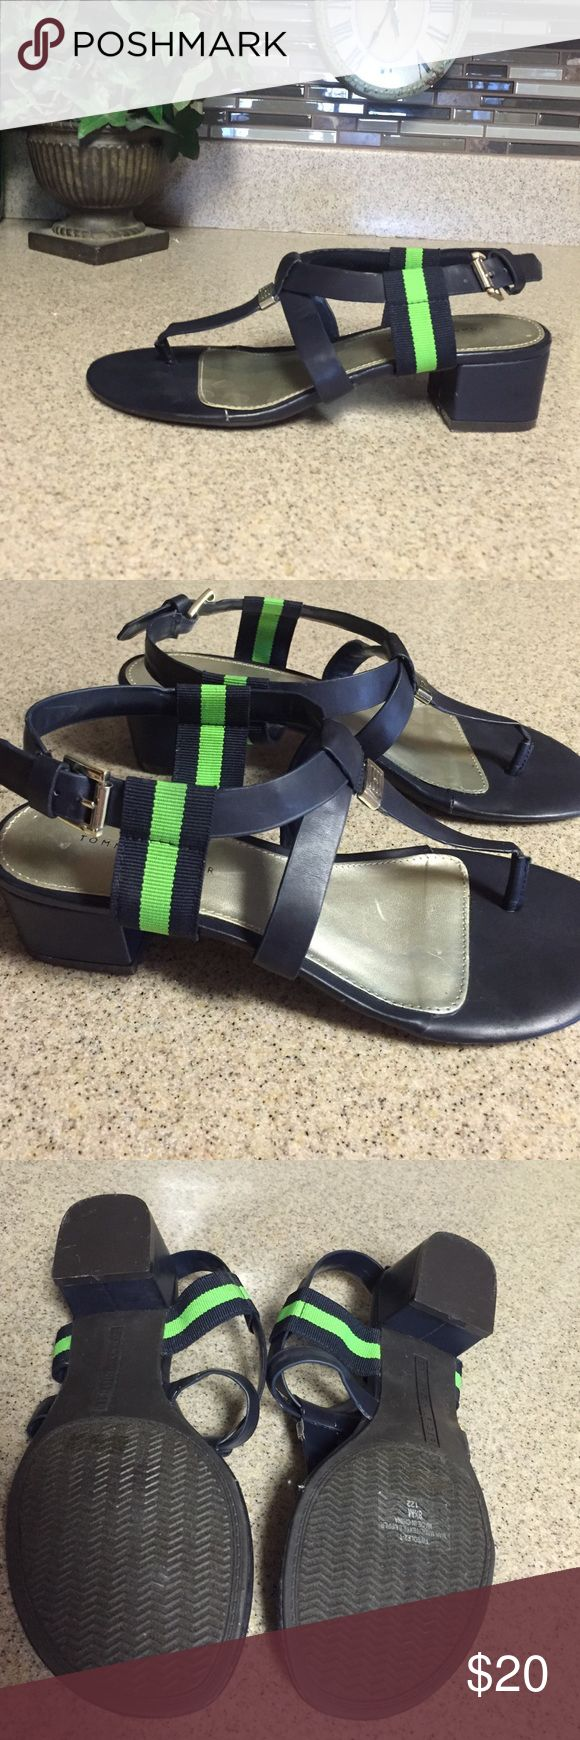 "Tommy Hilfiger Sandals These are gorgeous sandals by Tommy Hilfiger. Navy blue with the iconic green stripe. 2"" heels. There is a small crease in the left shoe where it bends at the toe. Not noticeable when worn. Size 8.5 Tommy Hilfiger Shoes Sandals"